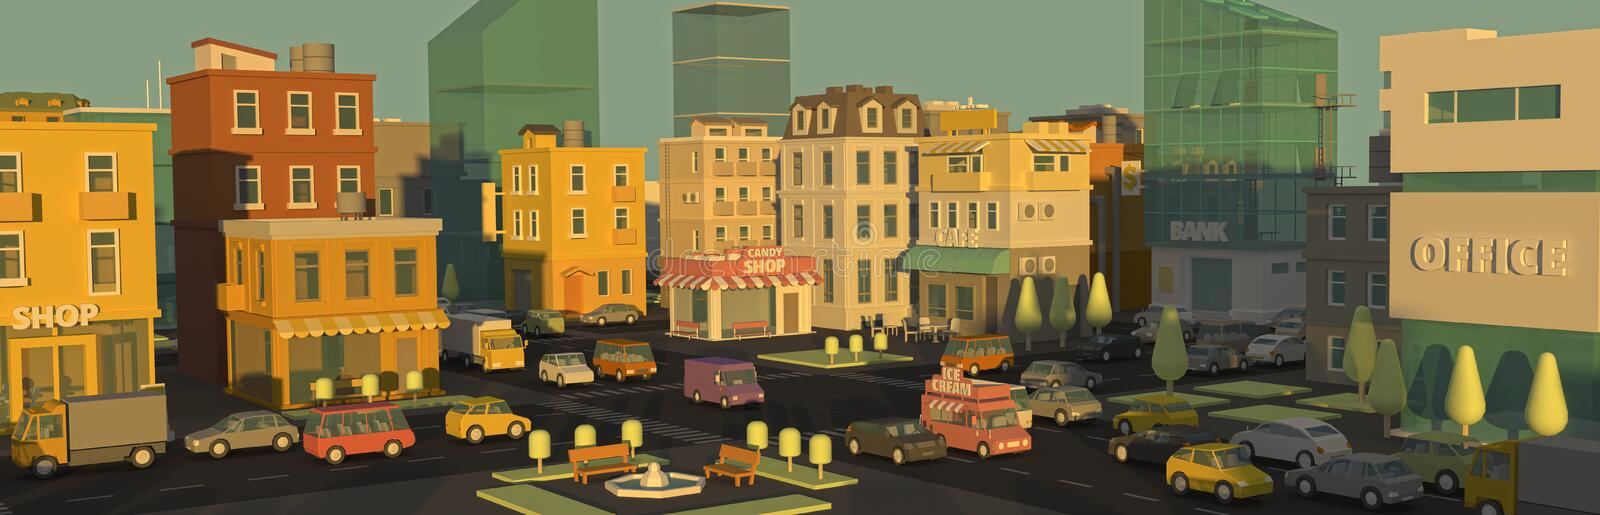 Banner cartoon street panorama city 3d. Outdoor advertising daylight. Very high detail. Cars end buildings. Place for royalty free stock photos